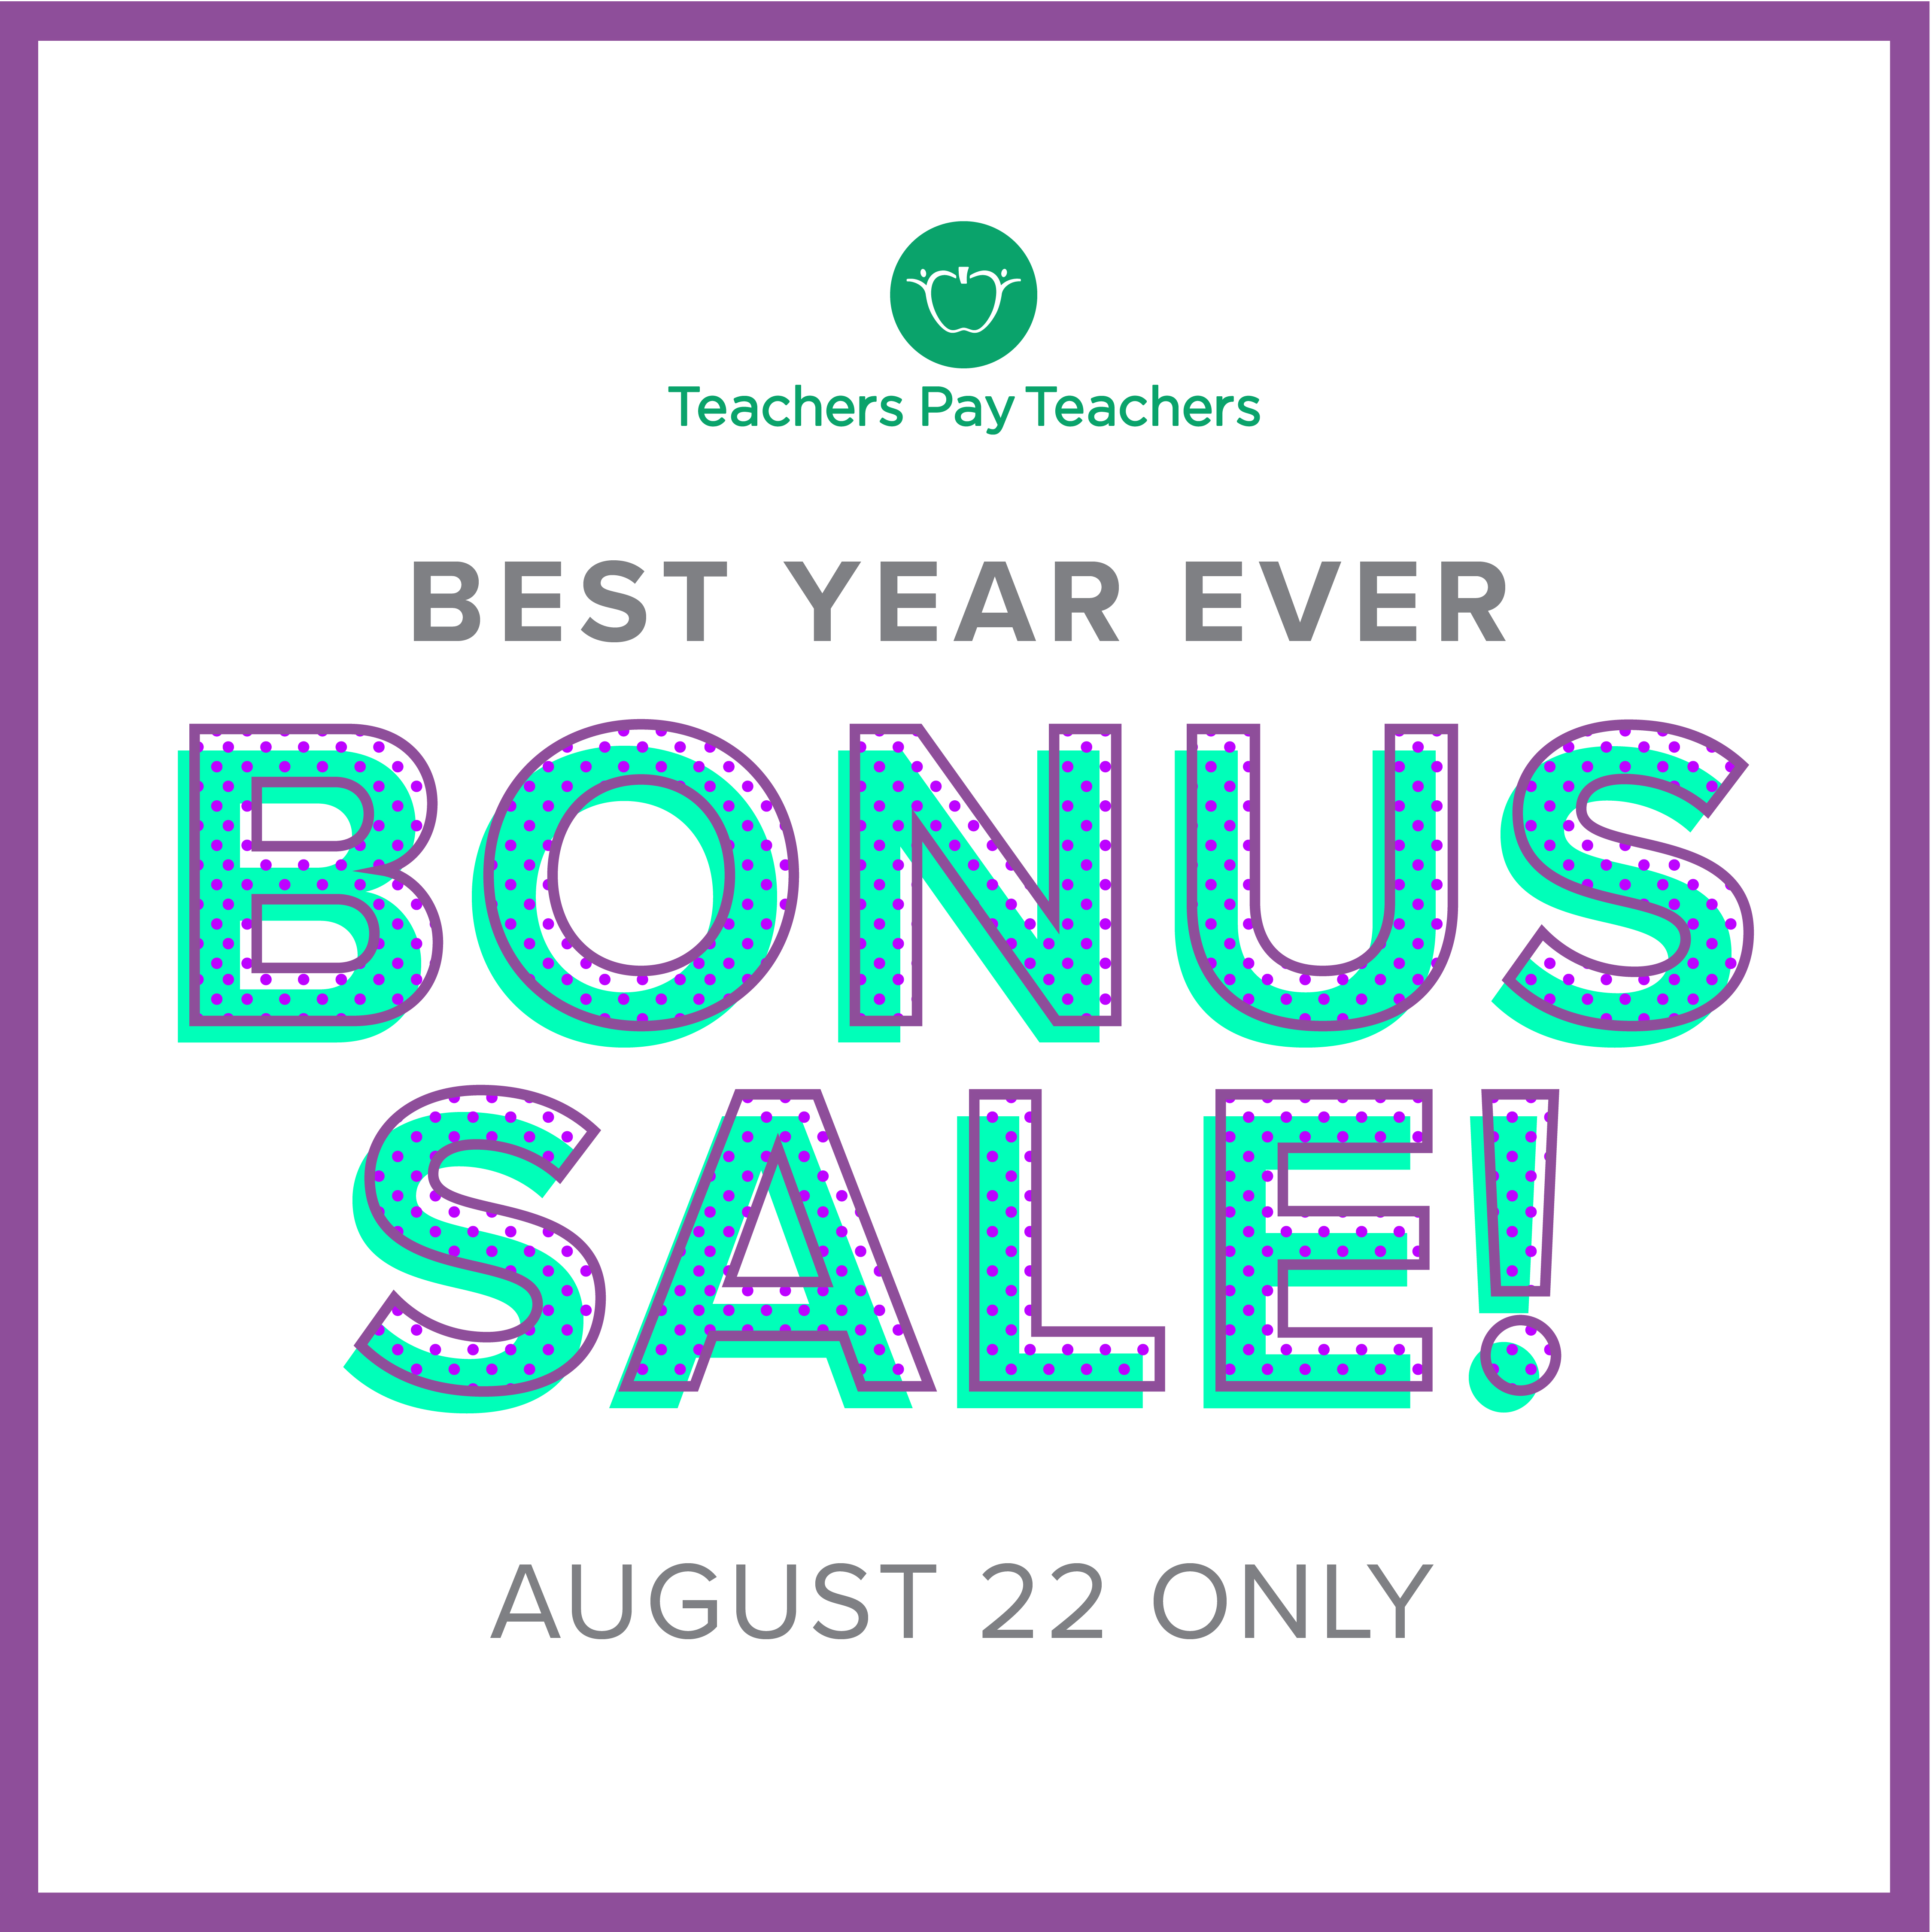 TpT's One-Day Sale Starts Soon!